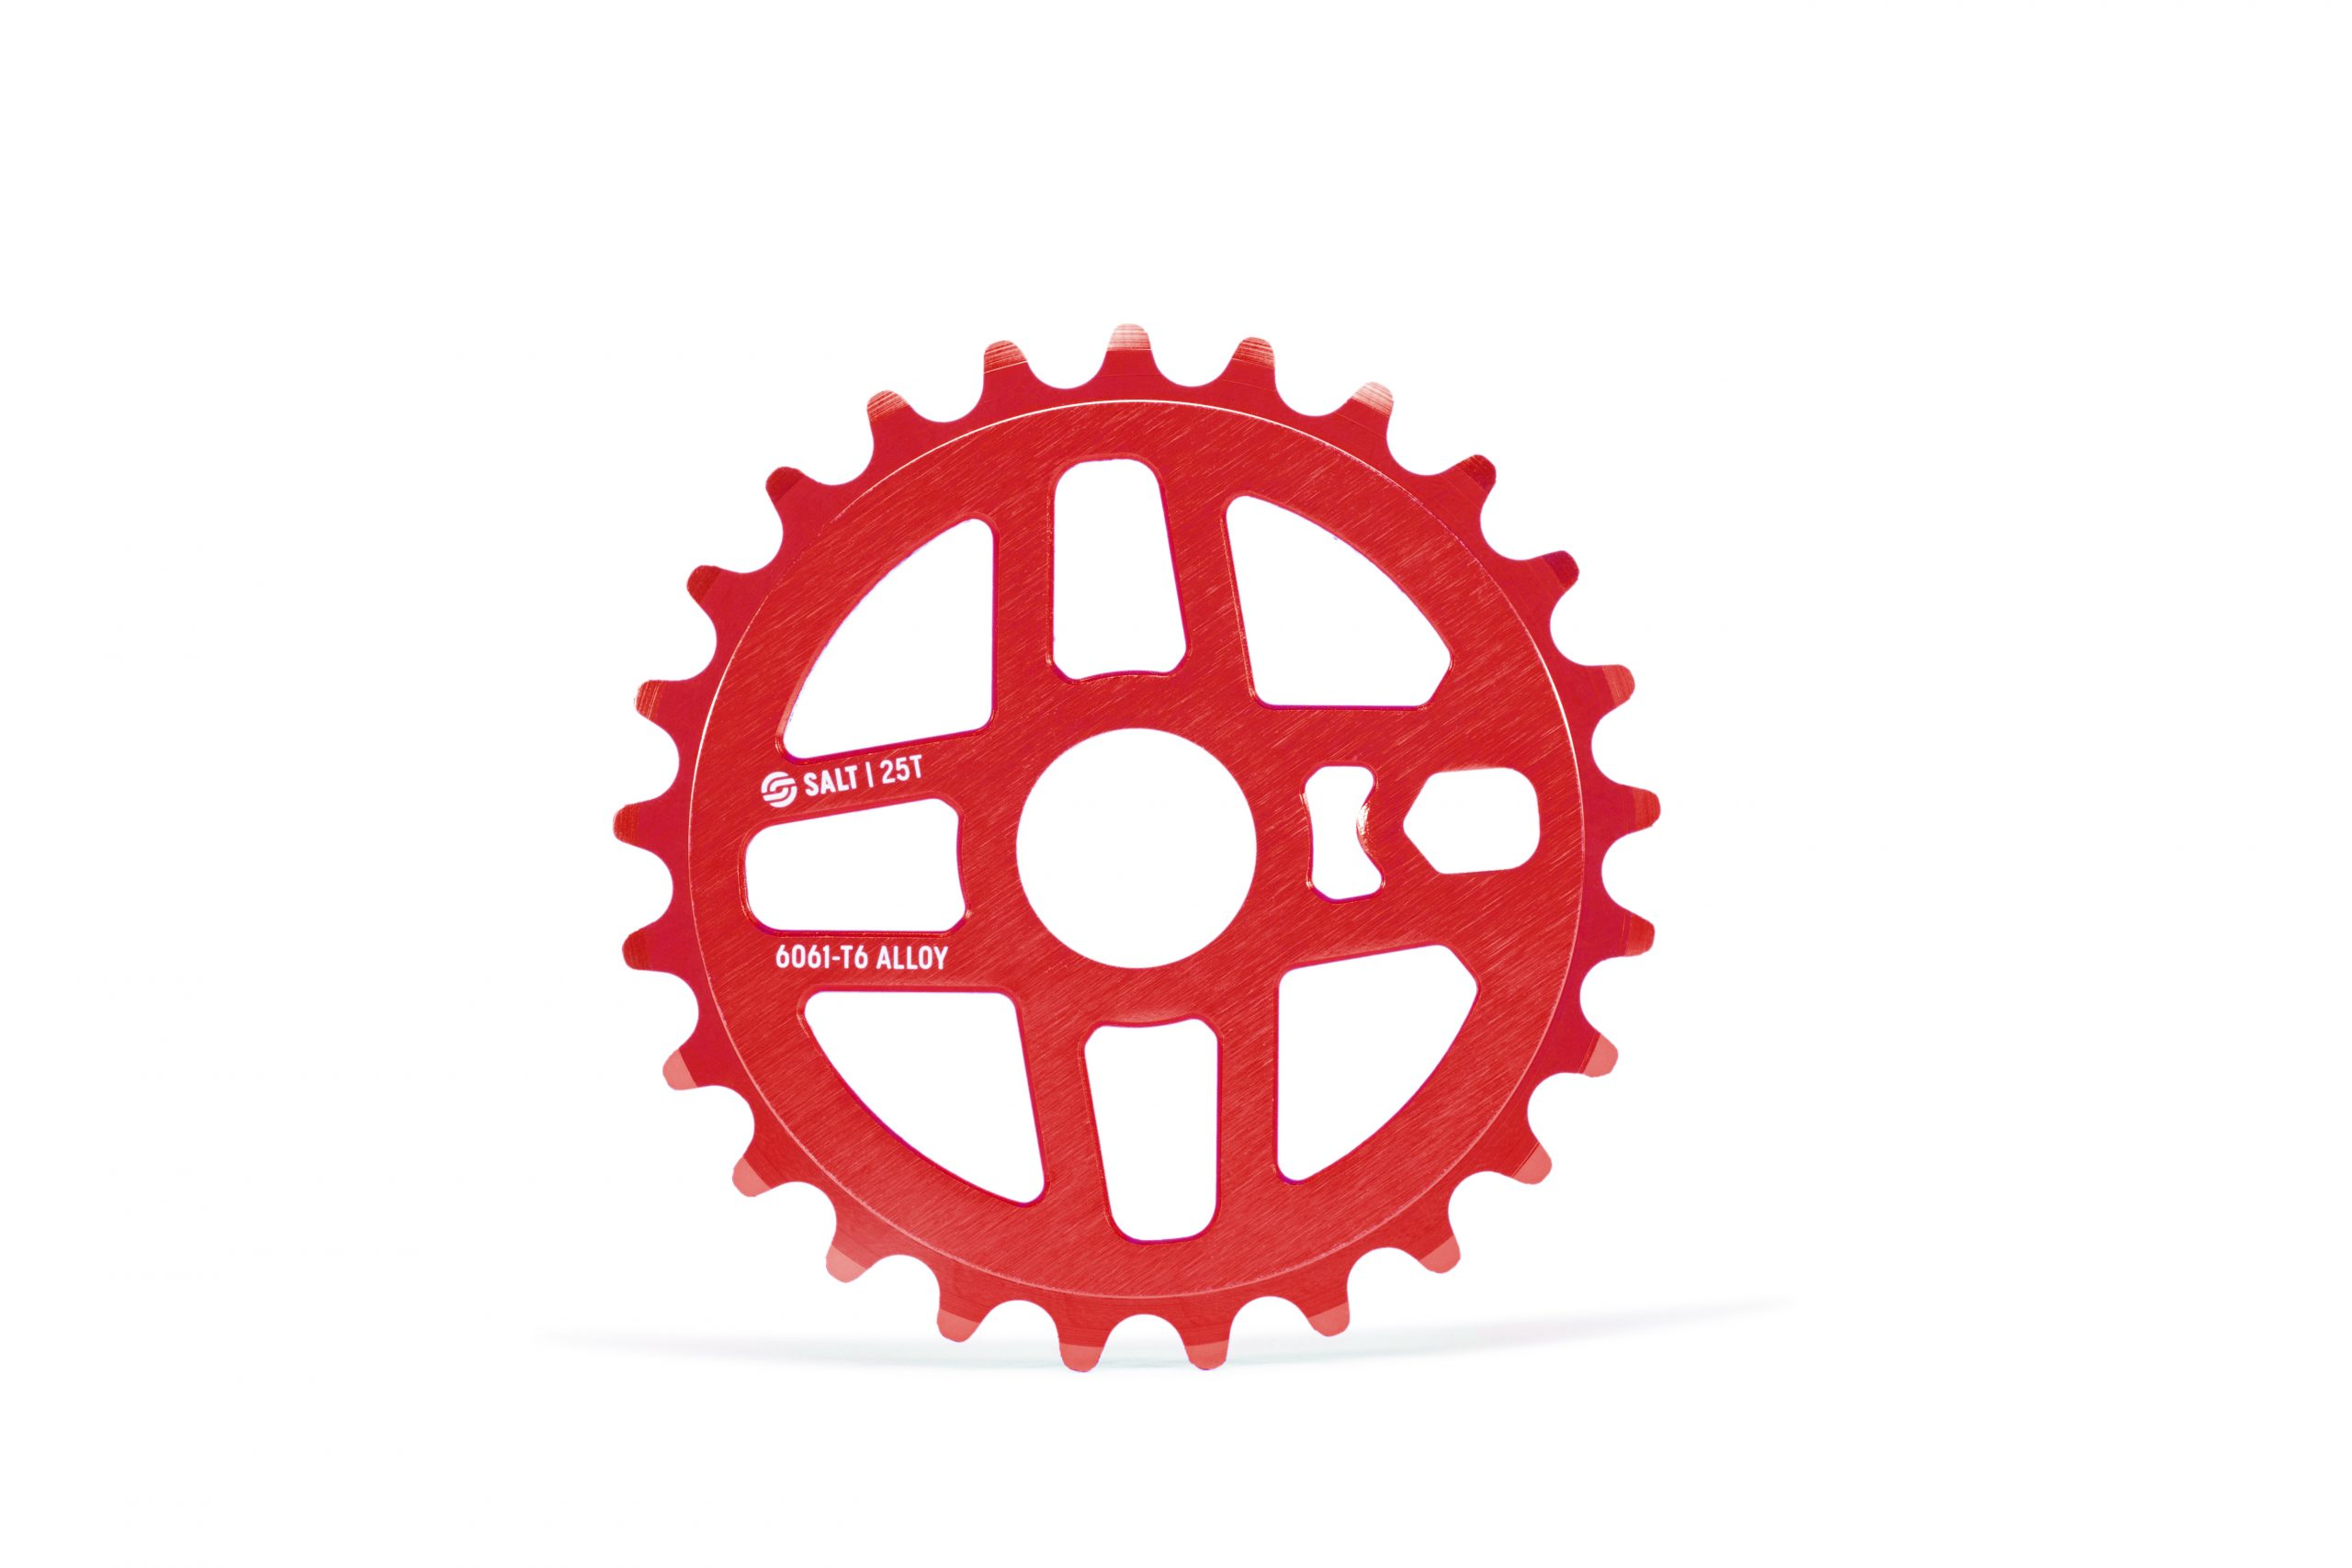 Salt_Pro_sprocket_25t_red-01